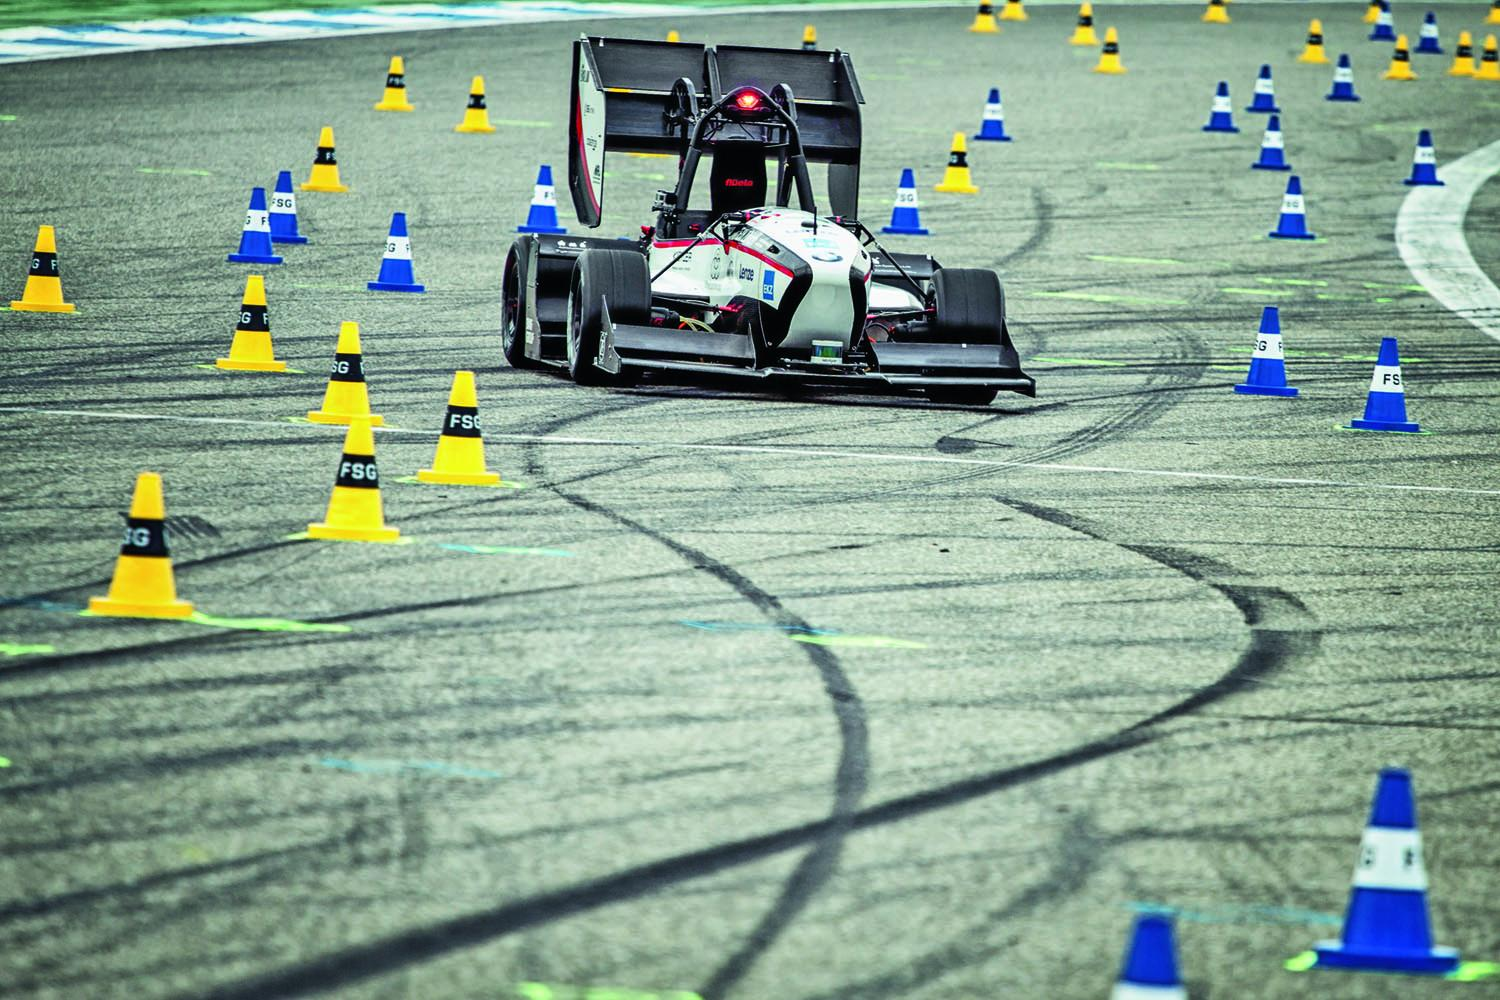 Swiss racing team wins with fastest driverless car